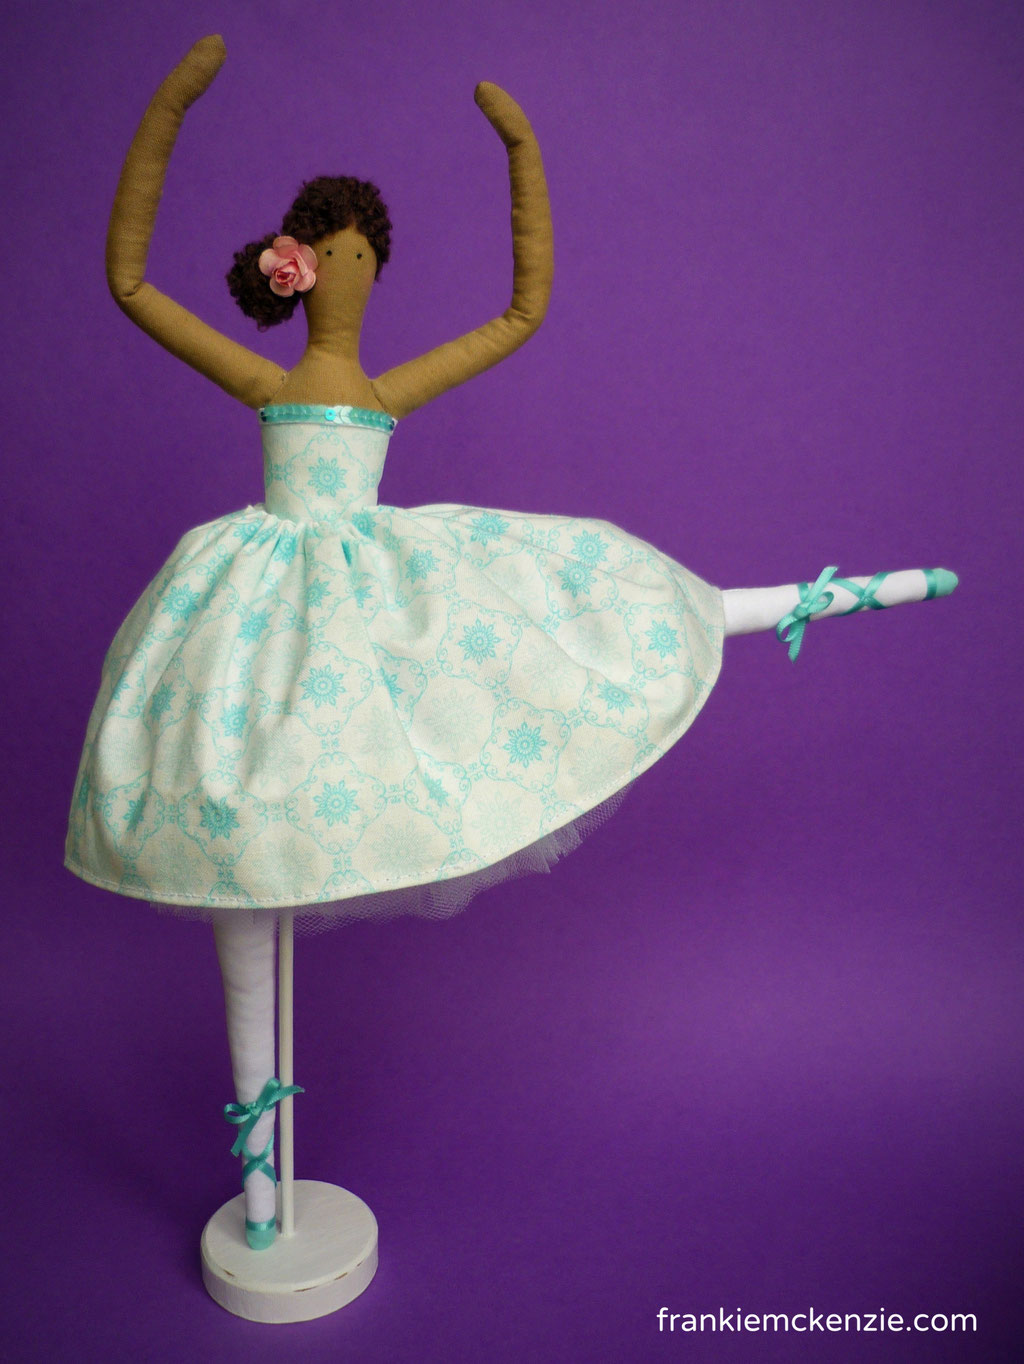 Little Ballerina Tilda doll wearing a white dress with turquoise floral elements